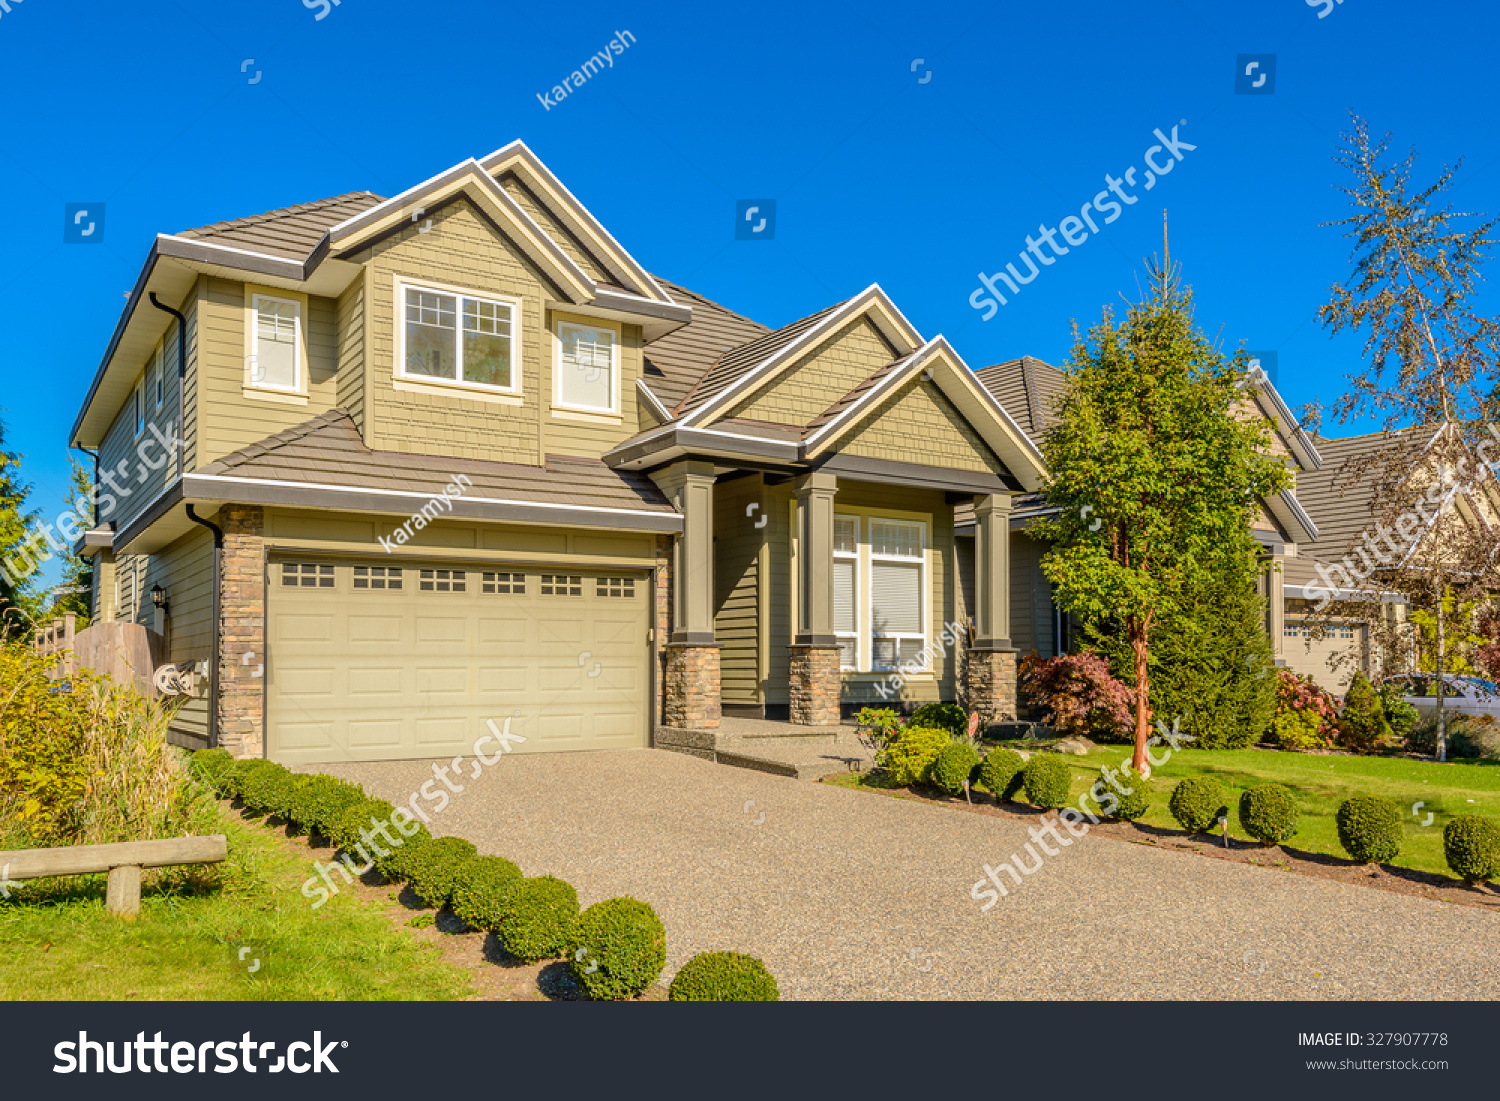 Luxury house sunny day vancouver canada stock photo for Home daylight